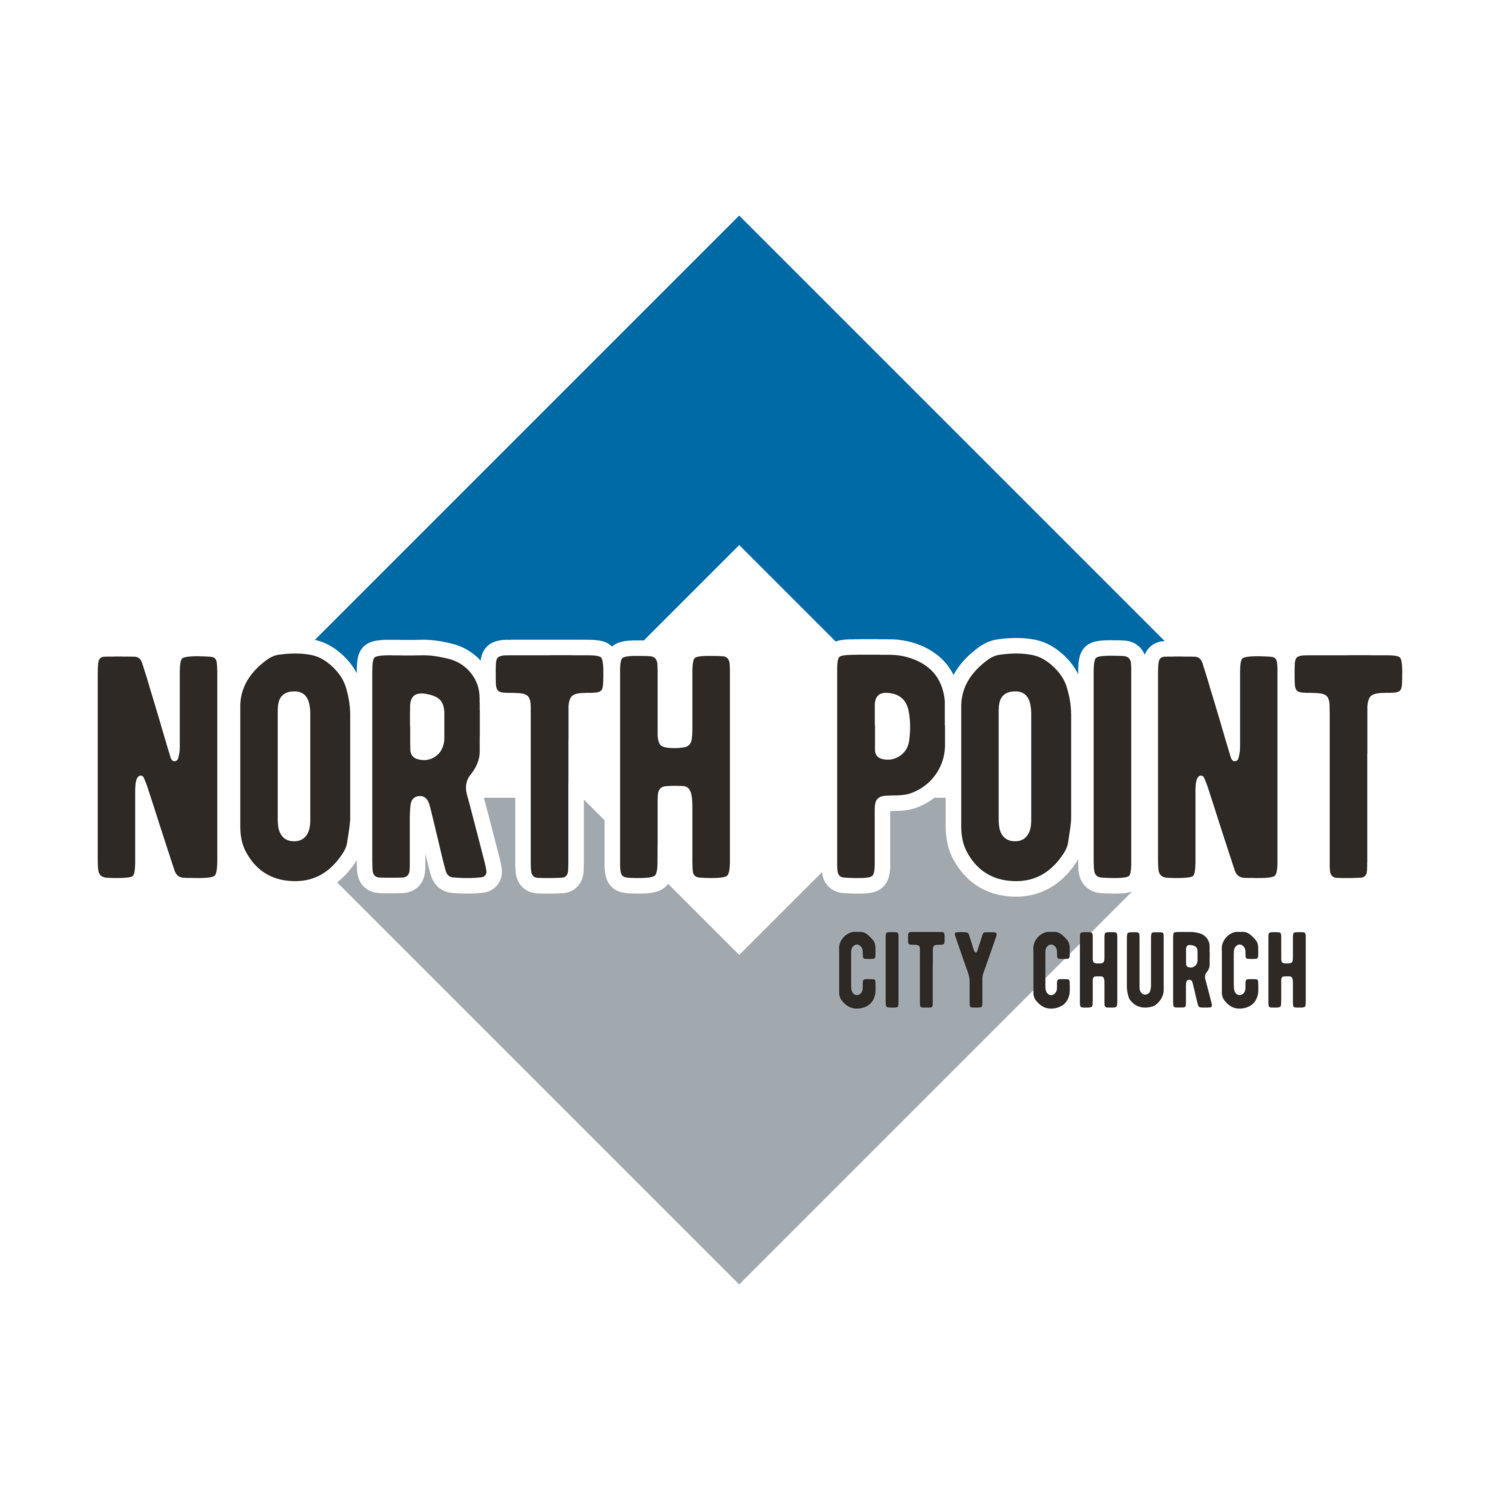 North Point City Church